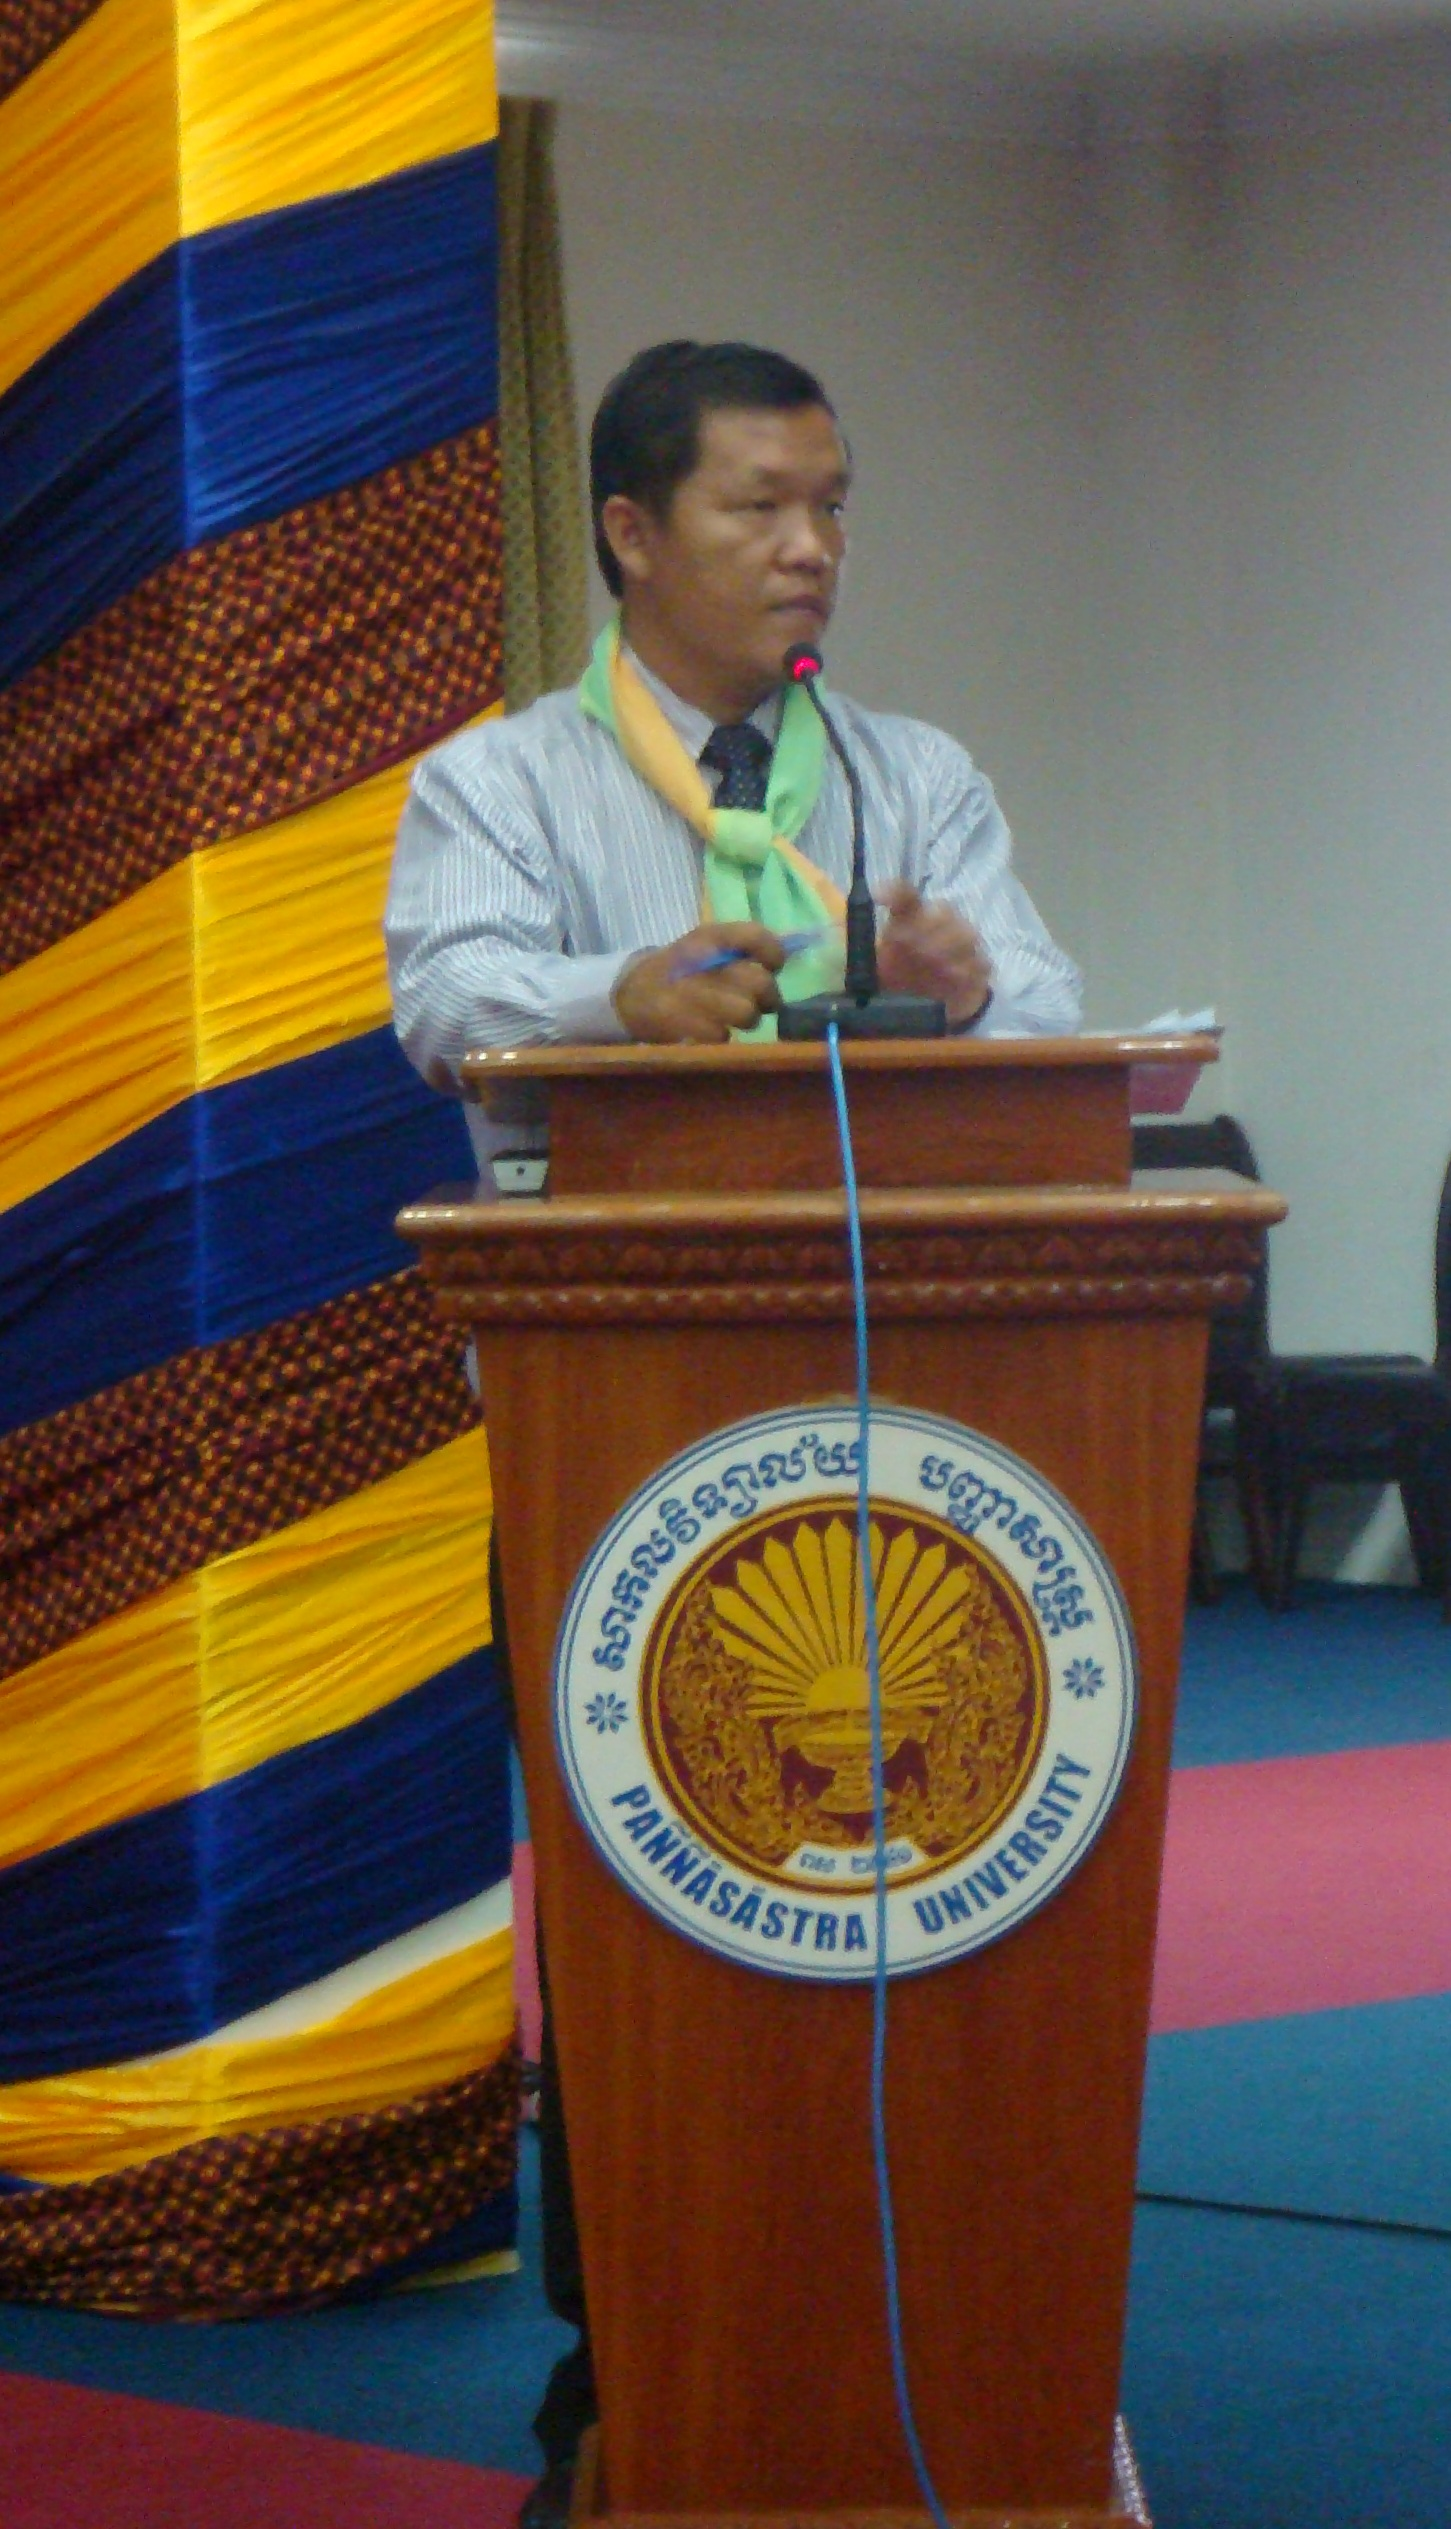 CJR interim director SOK Leang, 23 July 2010